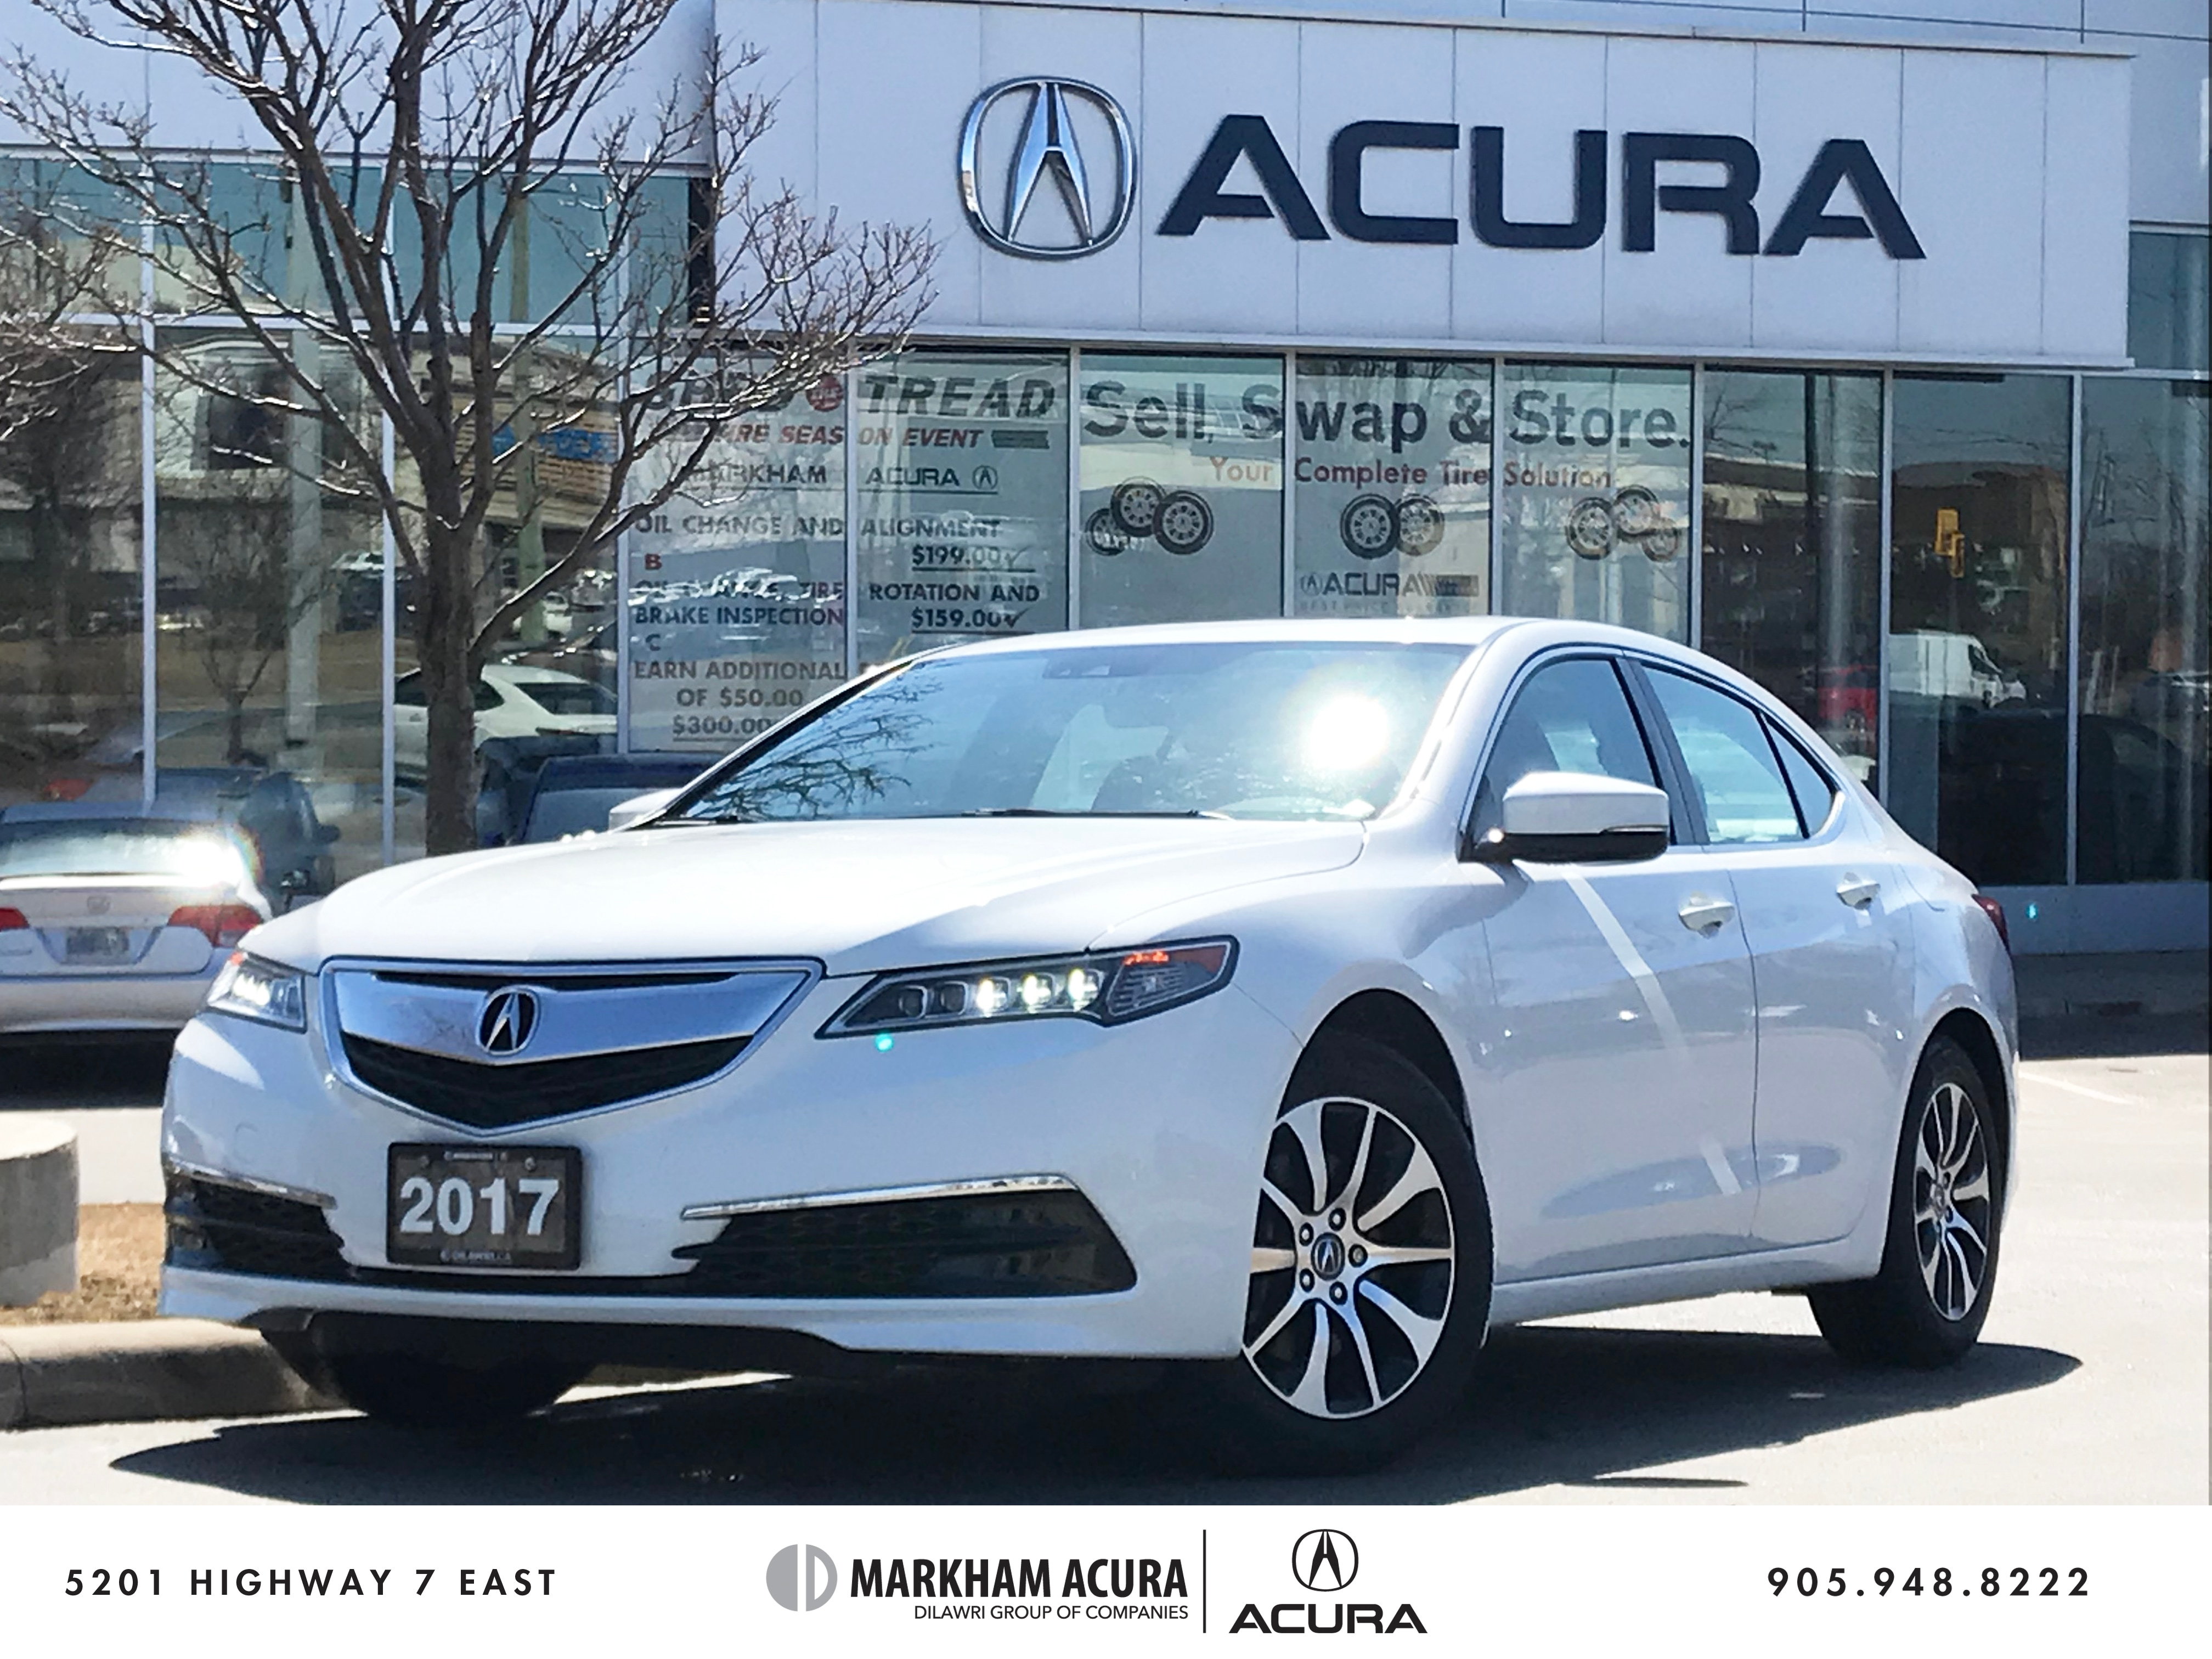 2017 Acura TLX 3.5L SH-AWD w/Tech Pkg Navi, Backup Cam, BSM, Htd Sedan